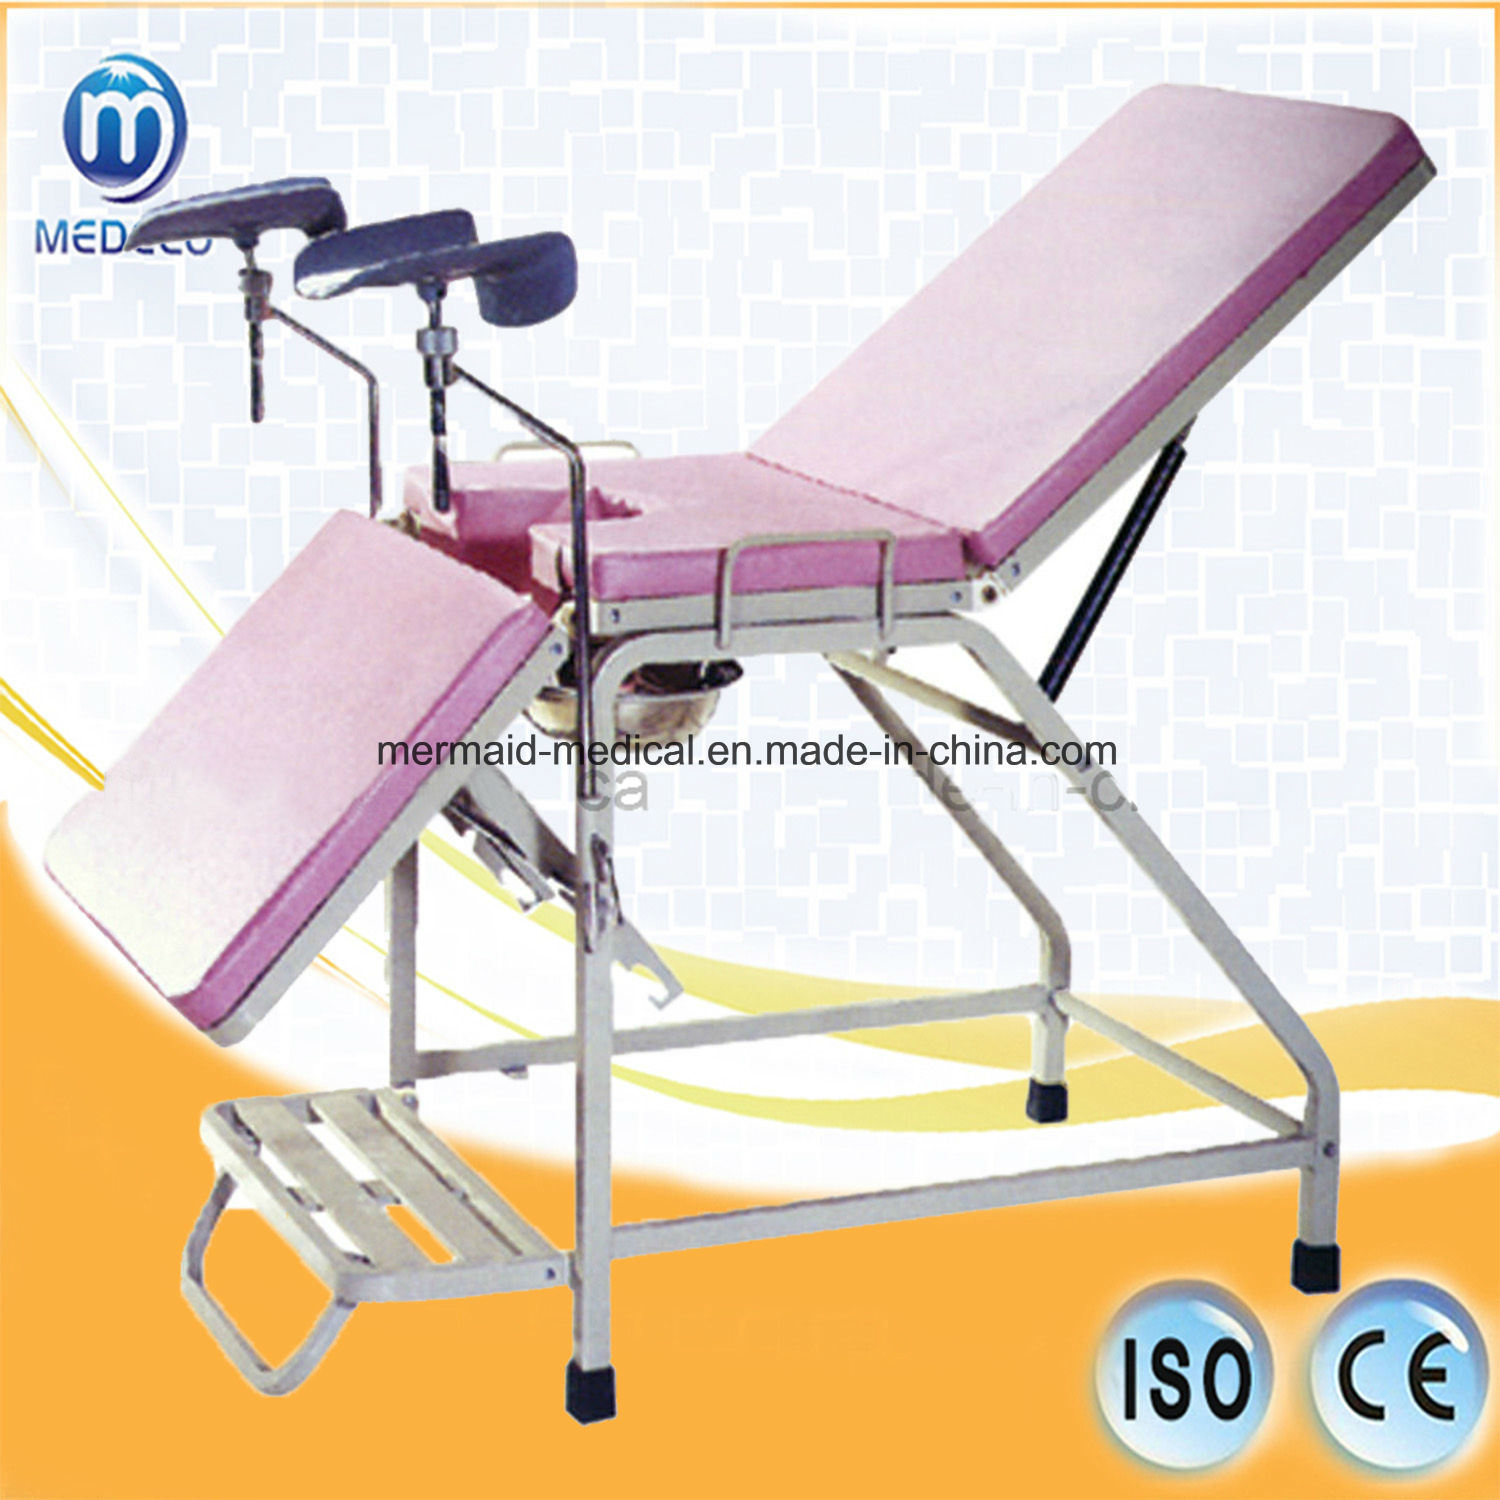 Medical Equipment Gynecology Inspection Bed, Obstetricbed pictures & photos